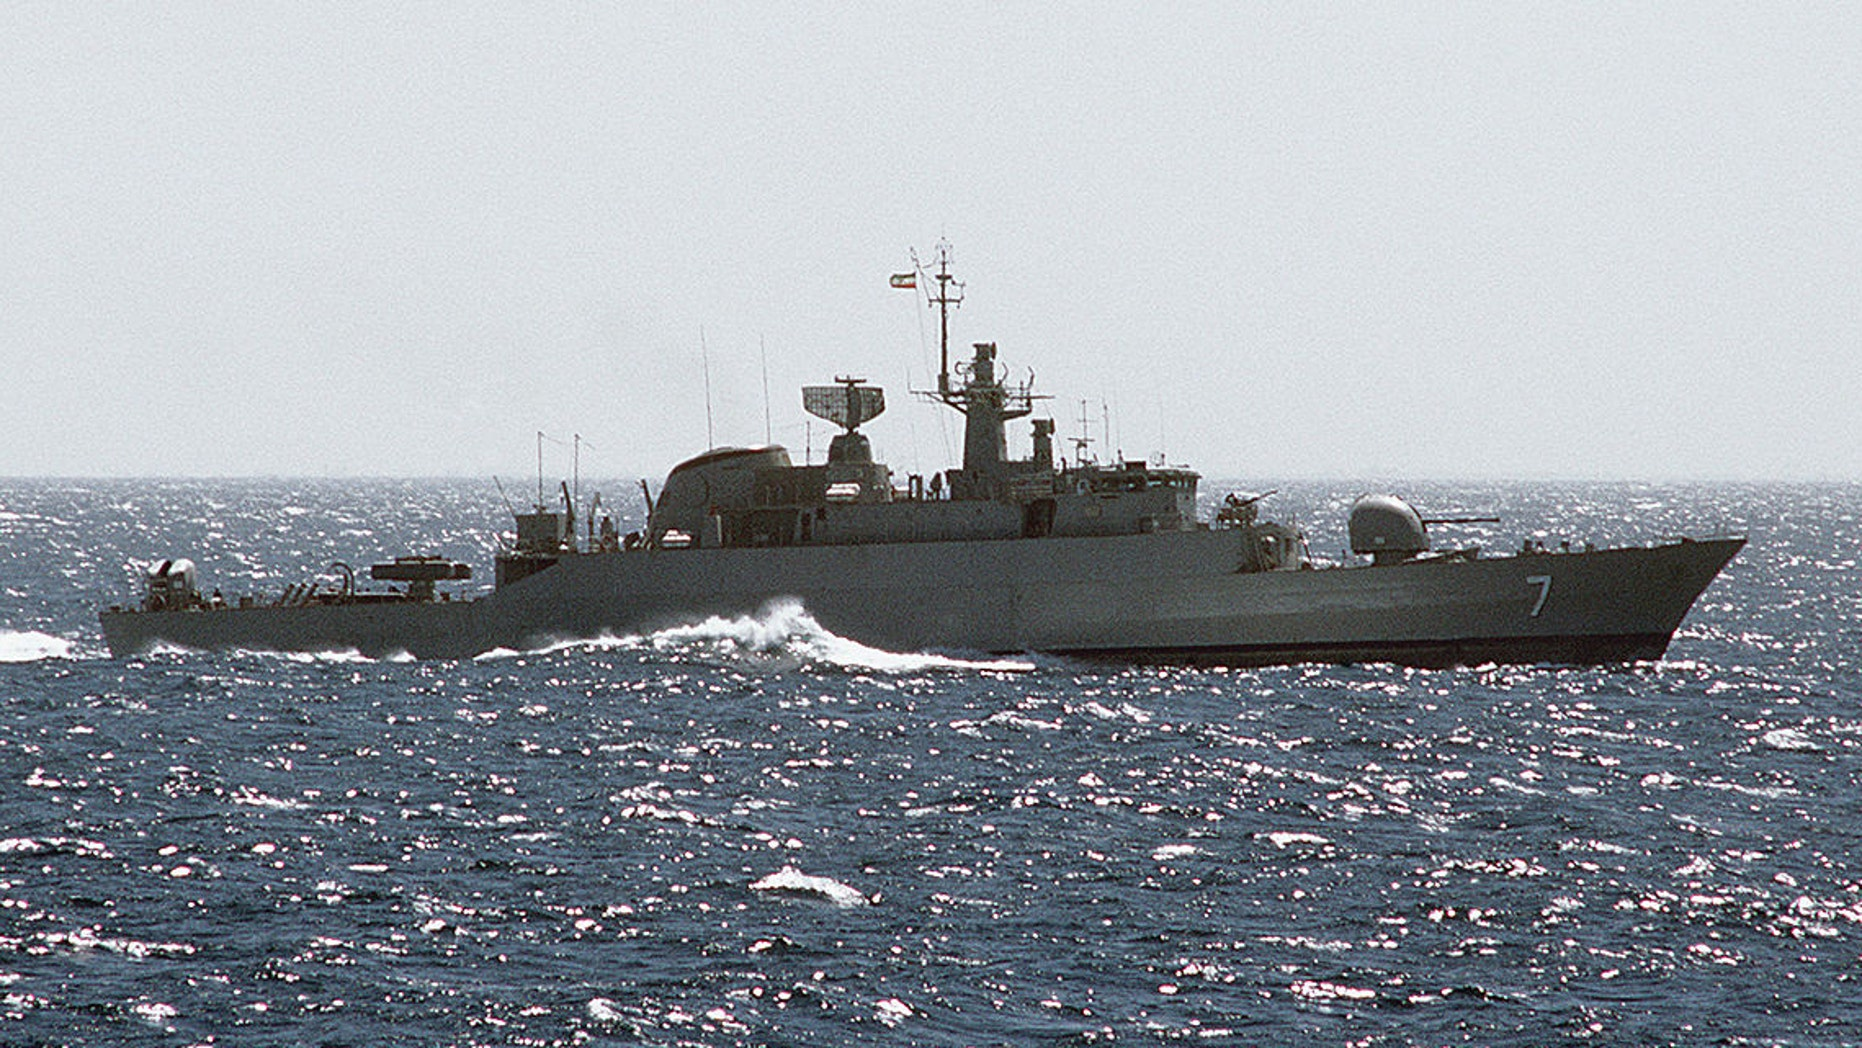 """A starboard beam view of an Iranian Alvand-class frigate. Iran's Islamic Revolutionary Guard is expected to put 100 gun boats in the Persian Gulf soon to practice """"swarm"""" tactics, U.S. officials have said."""